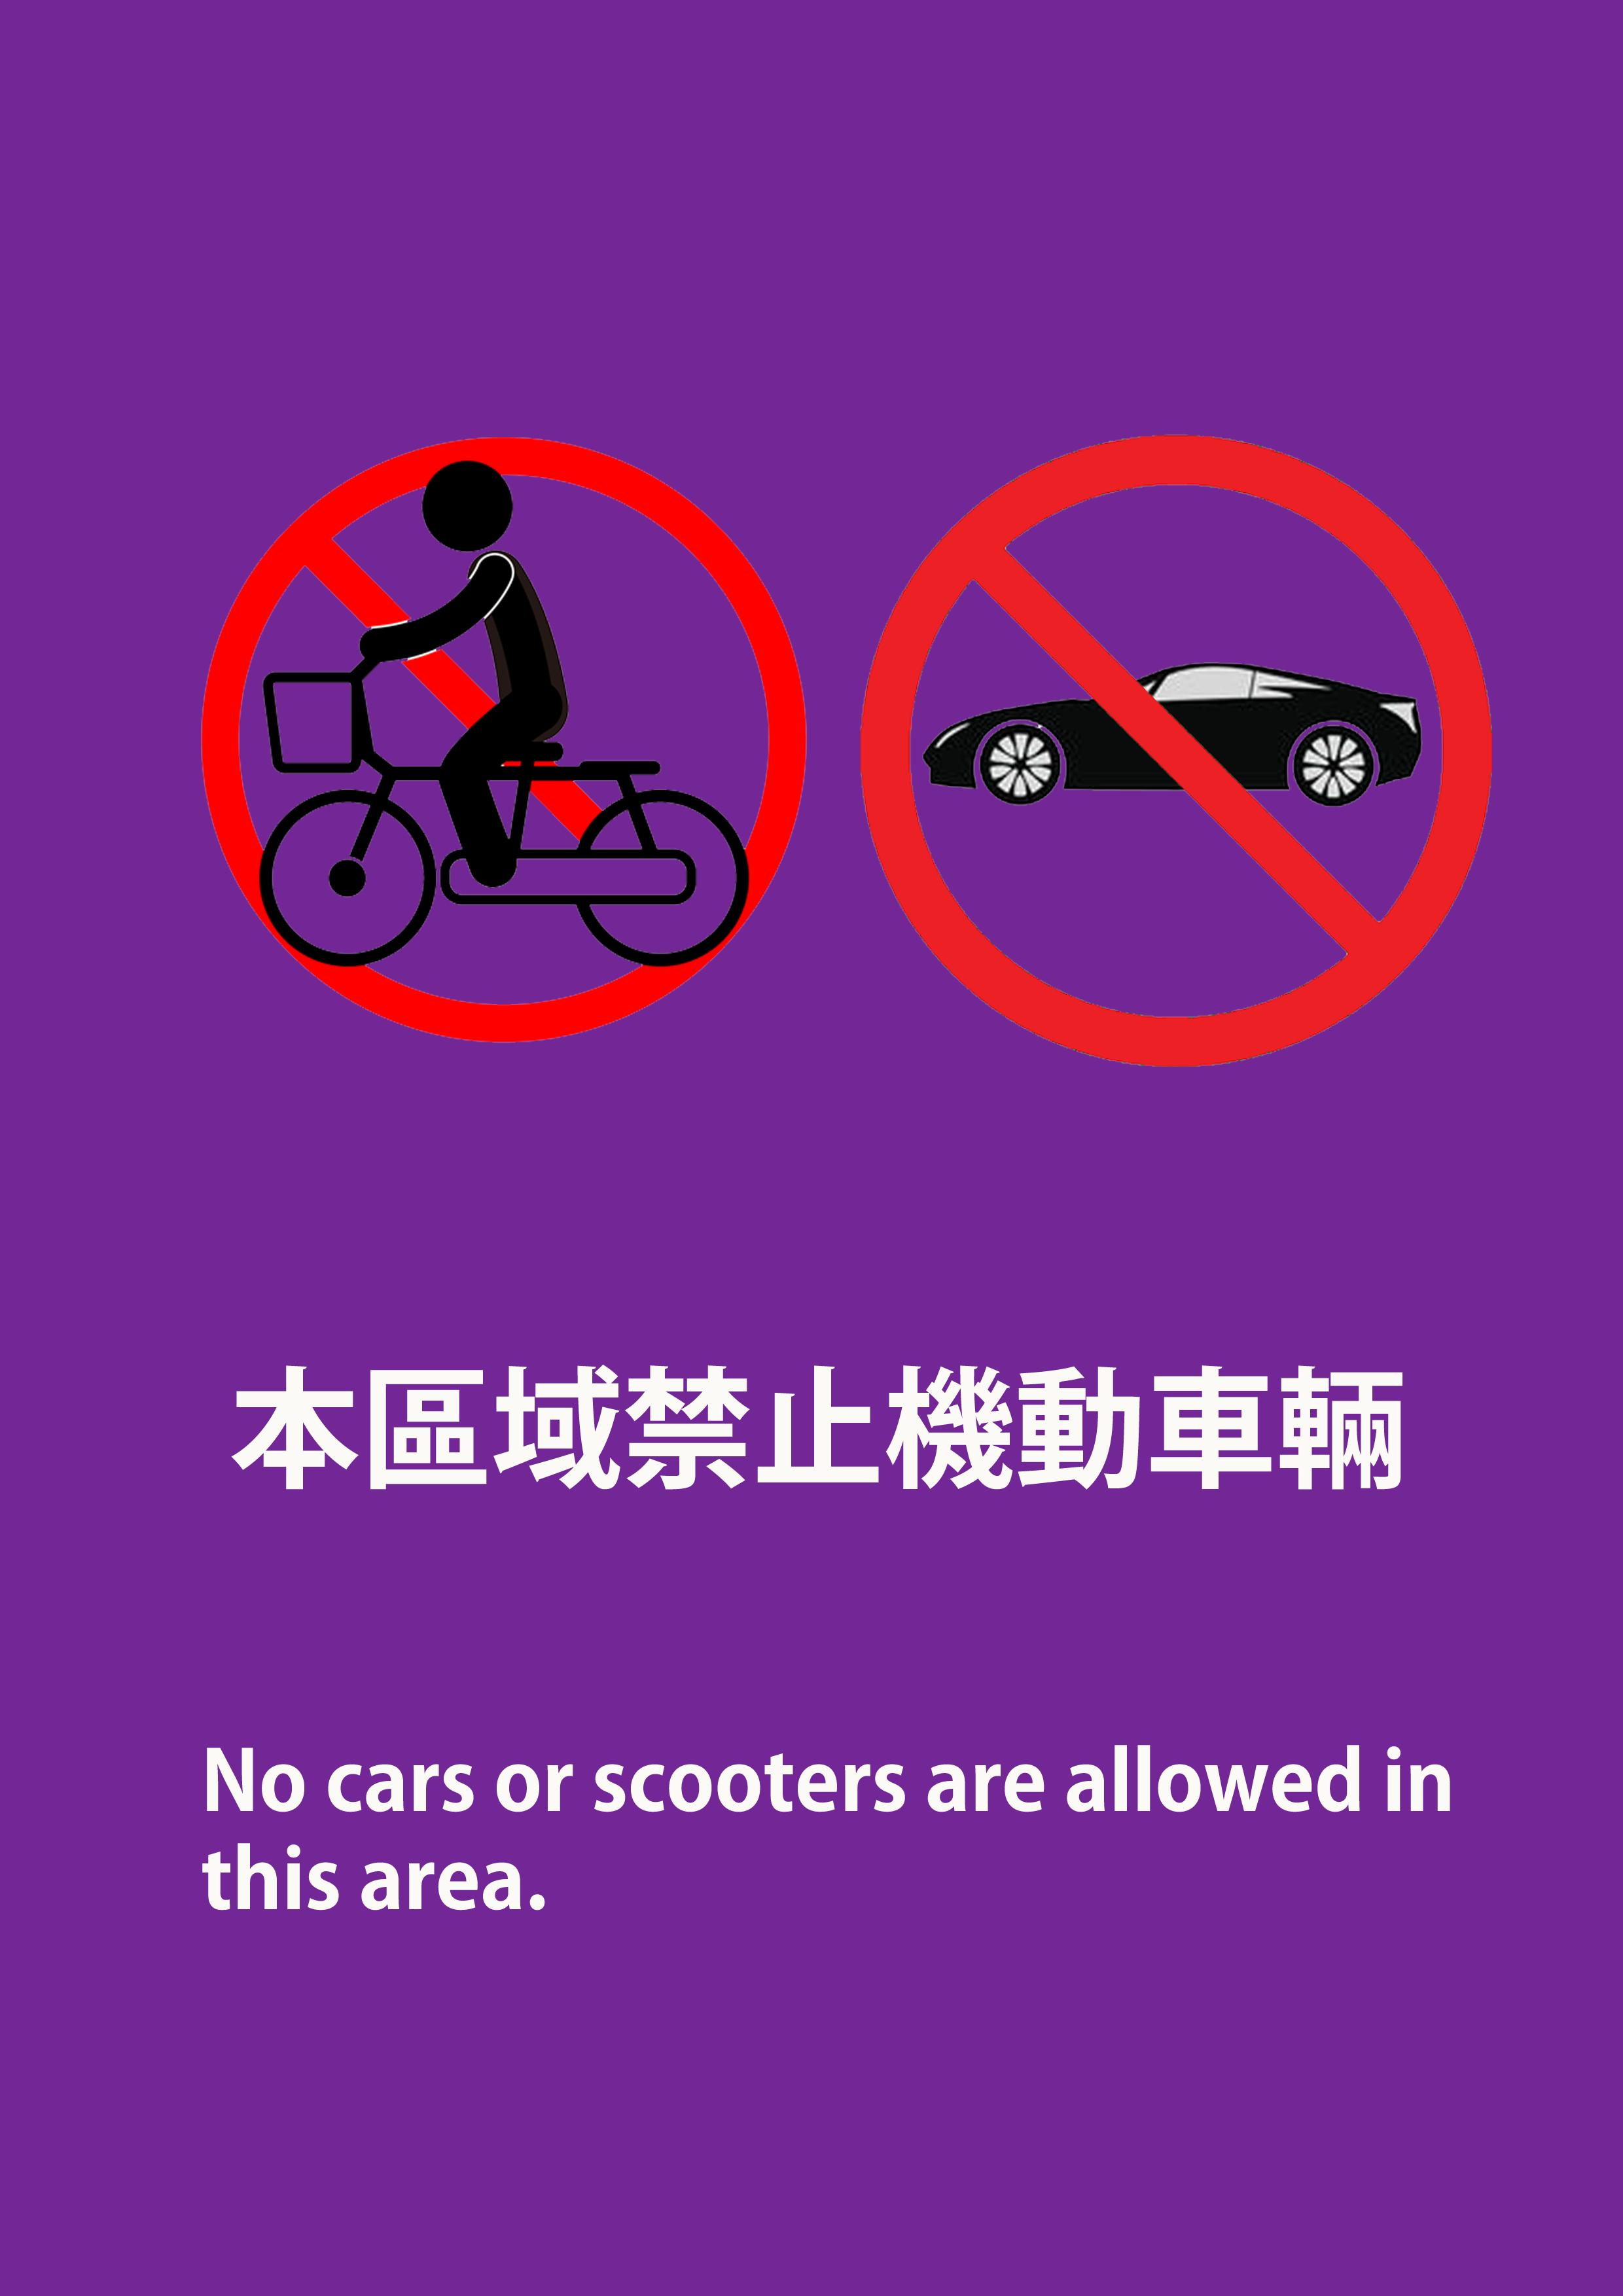 CARS; SCOOTER